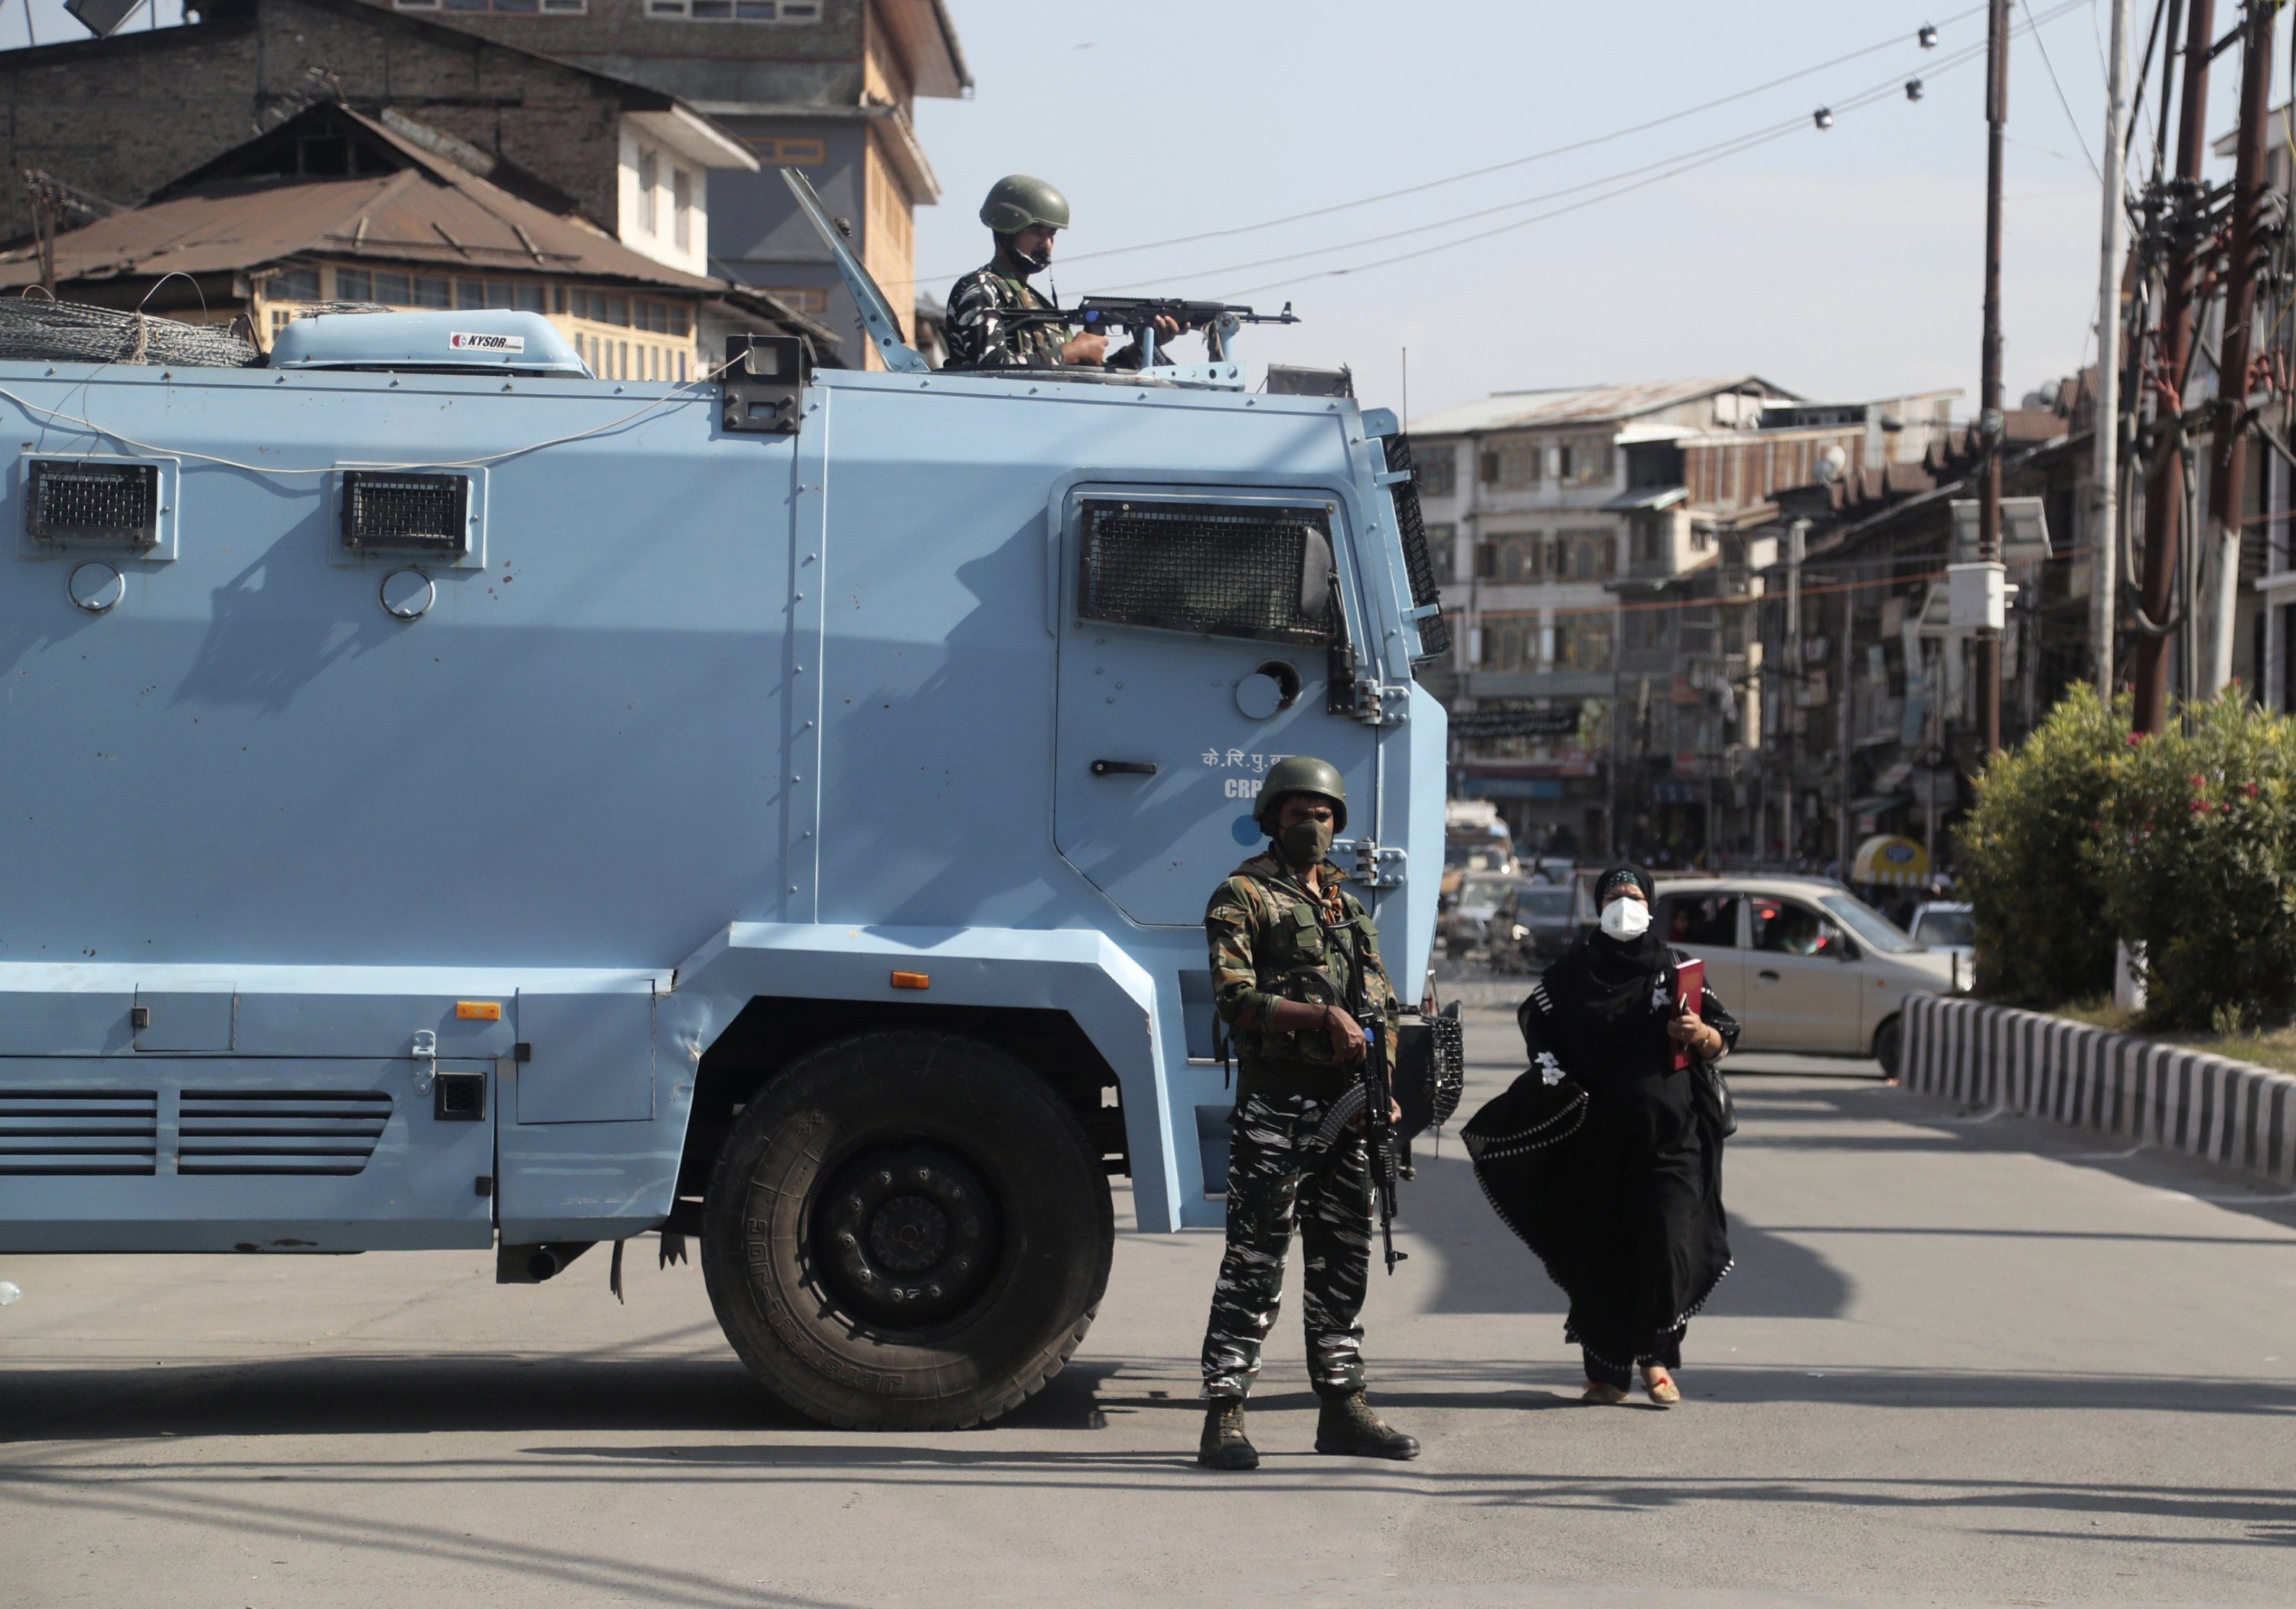 A Kashmiri woman walks past Indian paramilitary soldiers standing guard near the site of a grenade attack at a busy market in Srinagar, Indian controlled Kashmir, Tuesday, Aug. 10, 2021. (AP Photo)